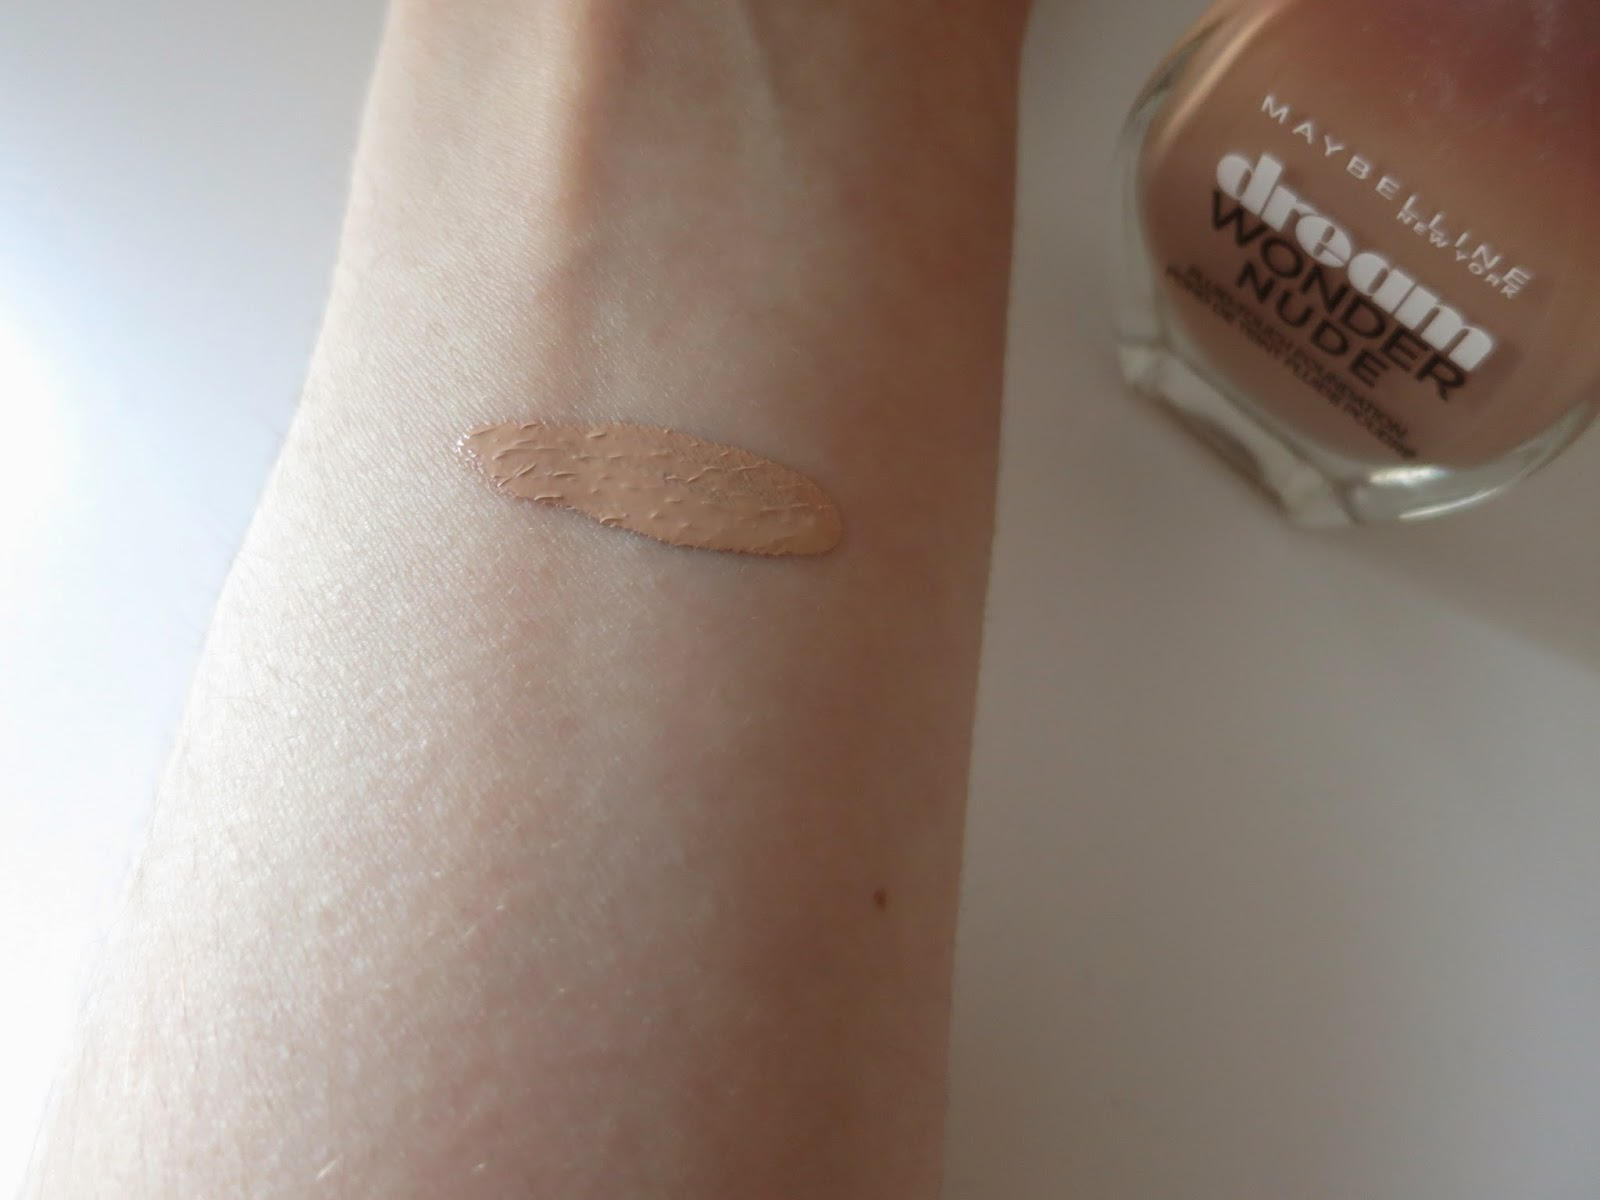 Fond de teint Dream Wonder Nude de Gemey Maybelline